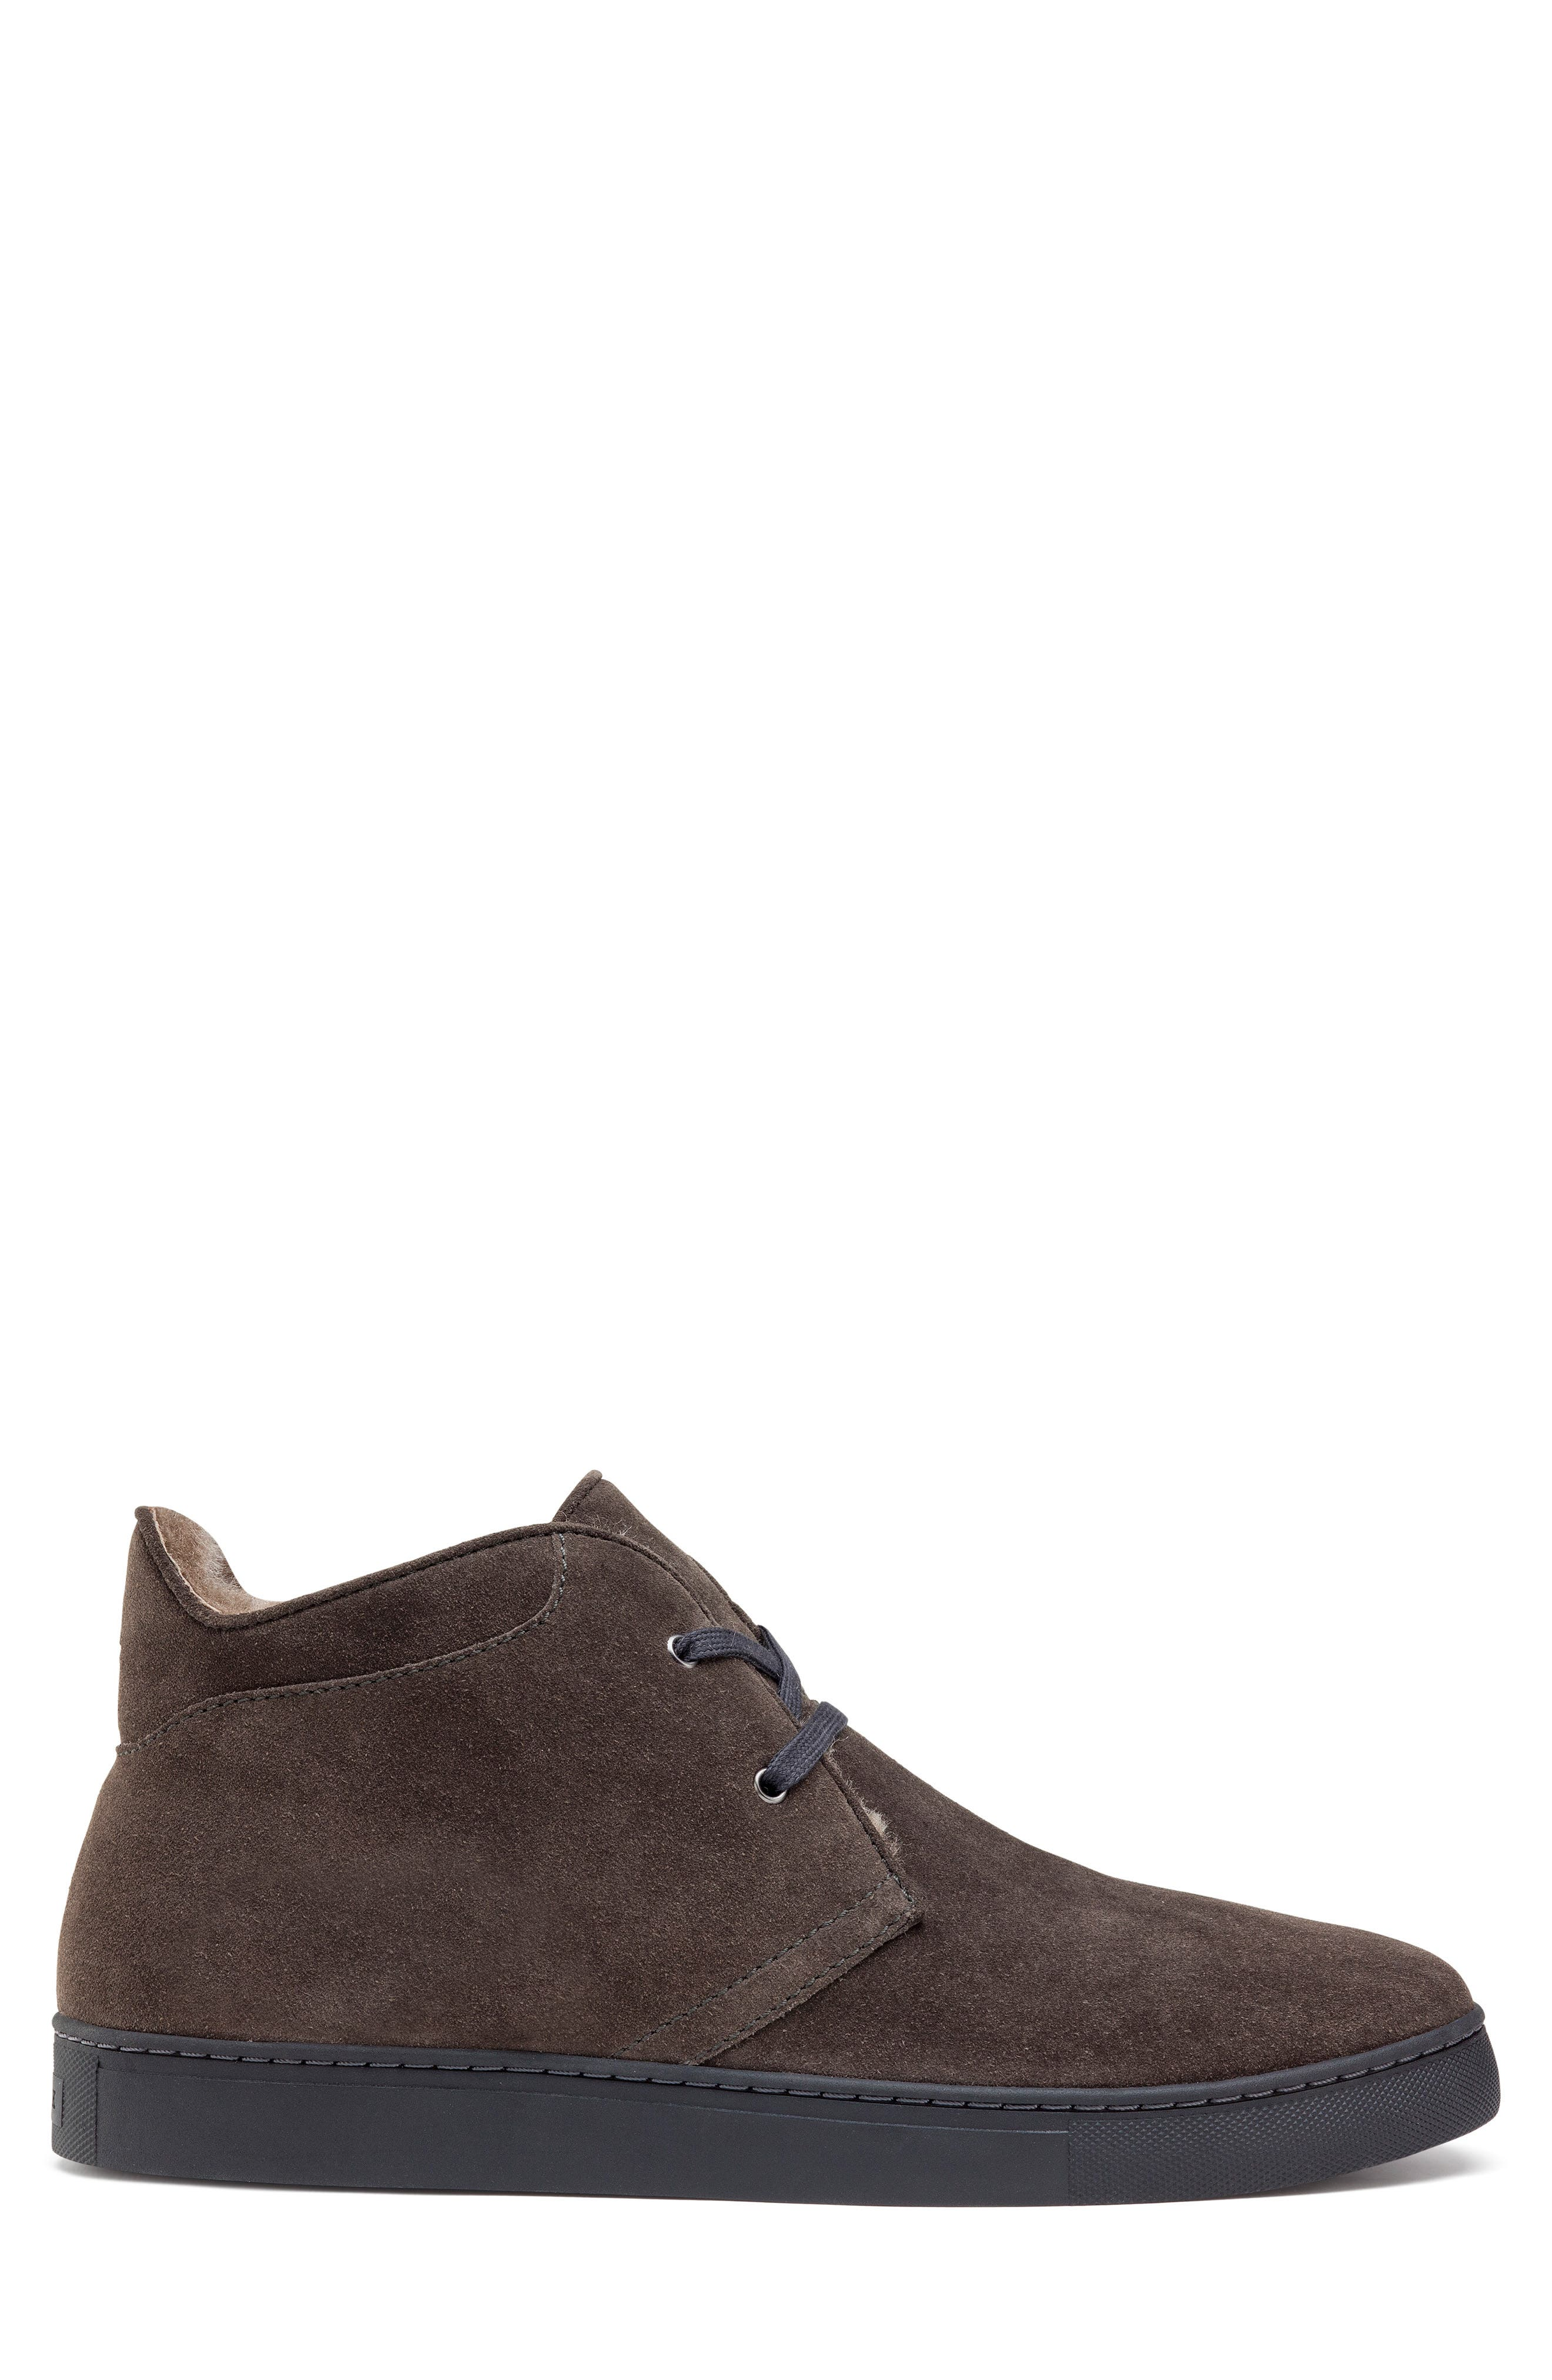 Ariston Genuine Shearling Chukka Boot,                             Alternate thumbnail 3, color,                             CHARCOAL SUEDE